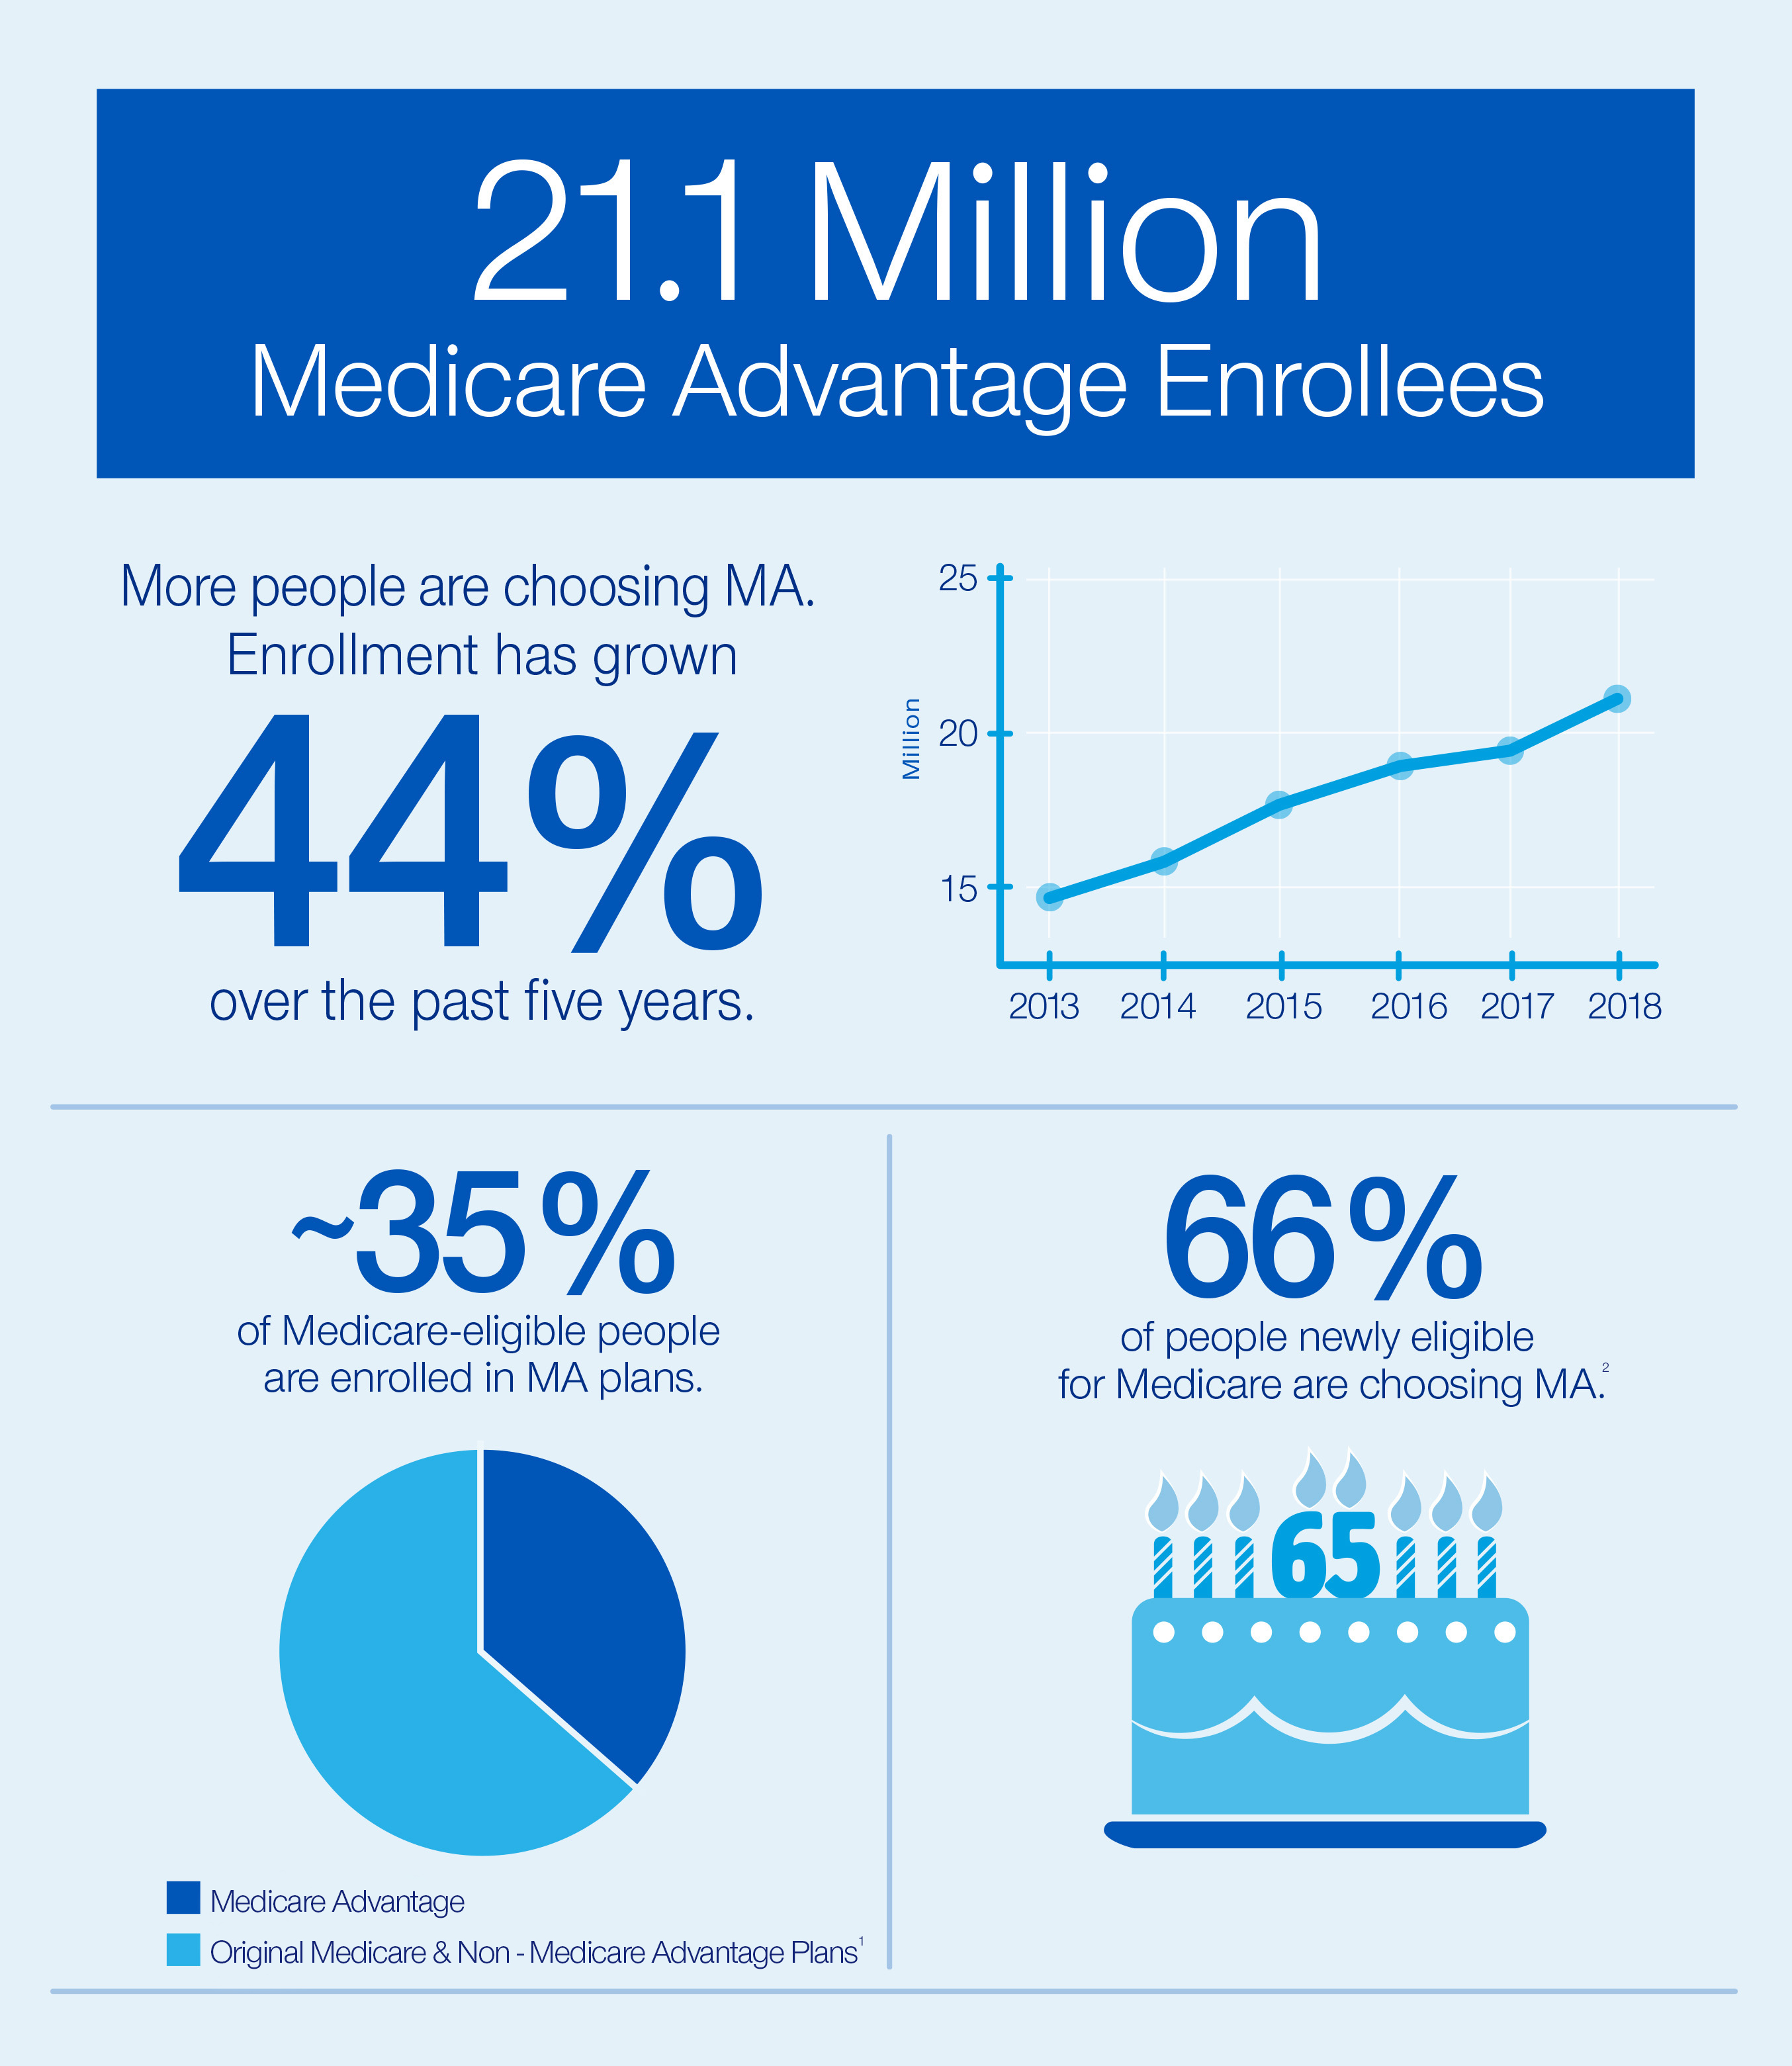 Infographic: Statistics on the growth of Medicare Advantage Enrollees